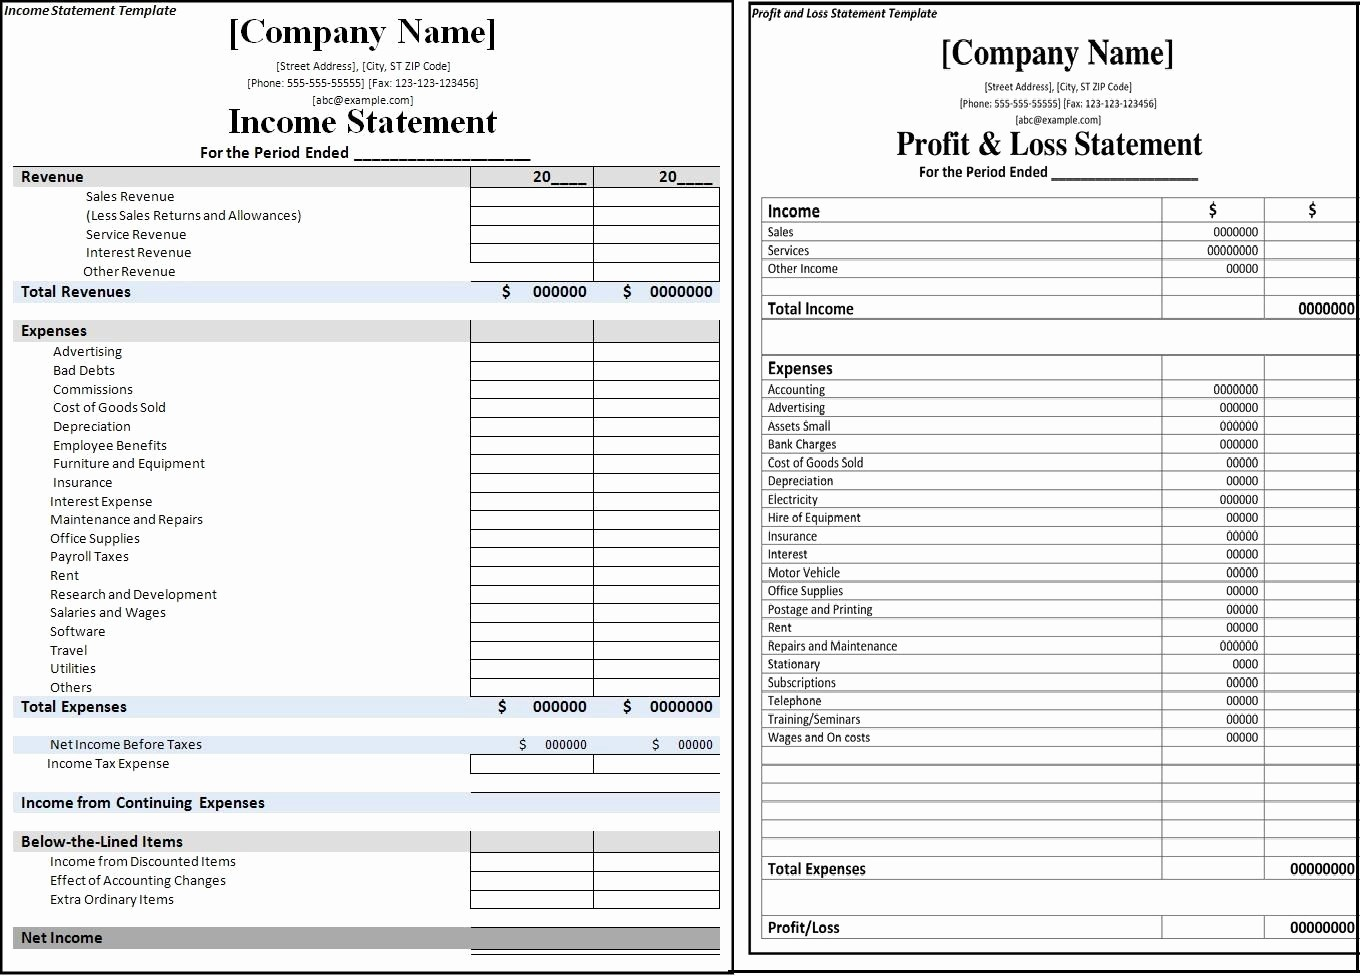 Profits and Loss Statement Template Best Of Profit and Loss Statement Vs In E Statement